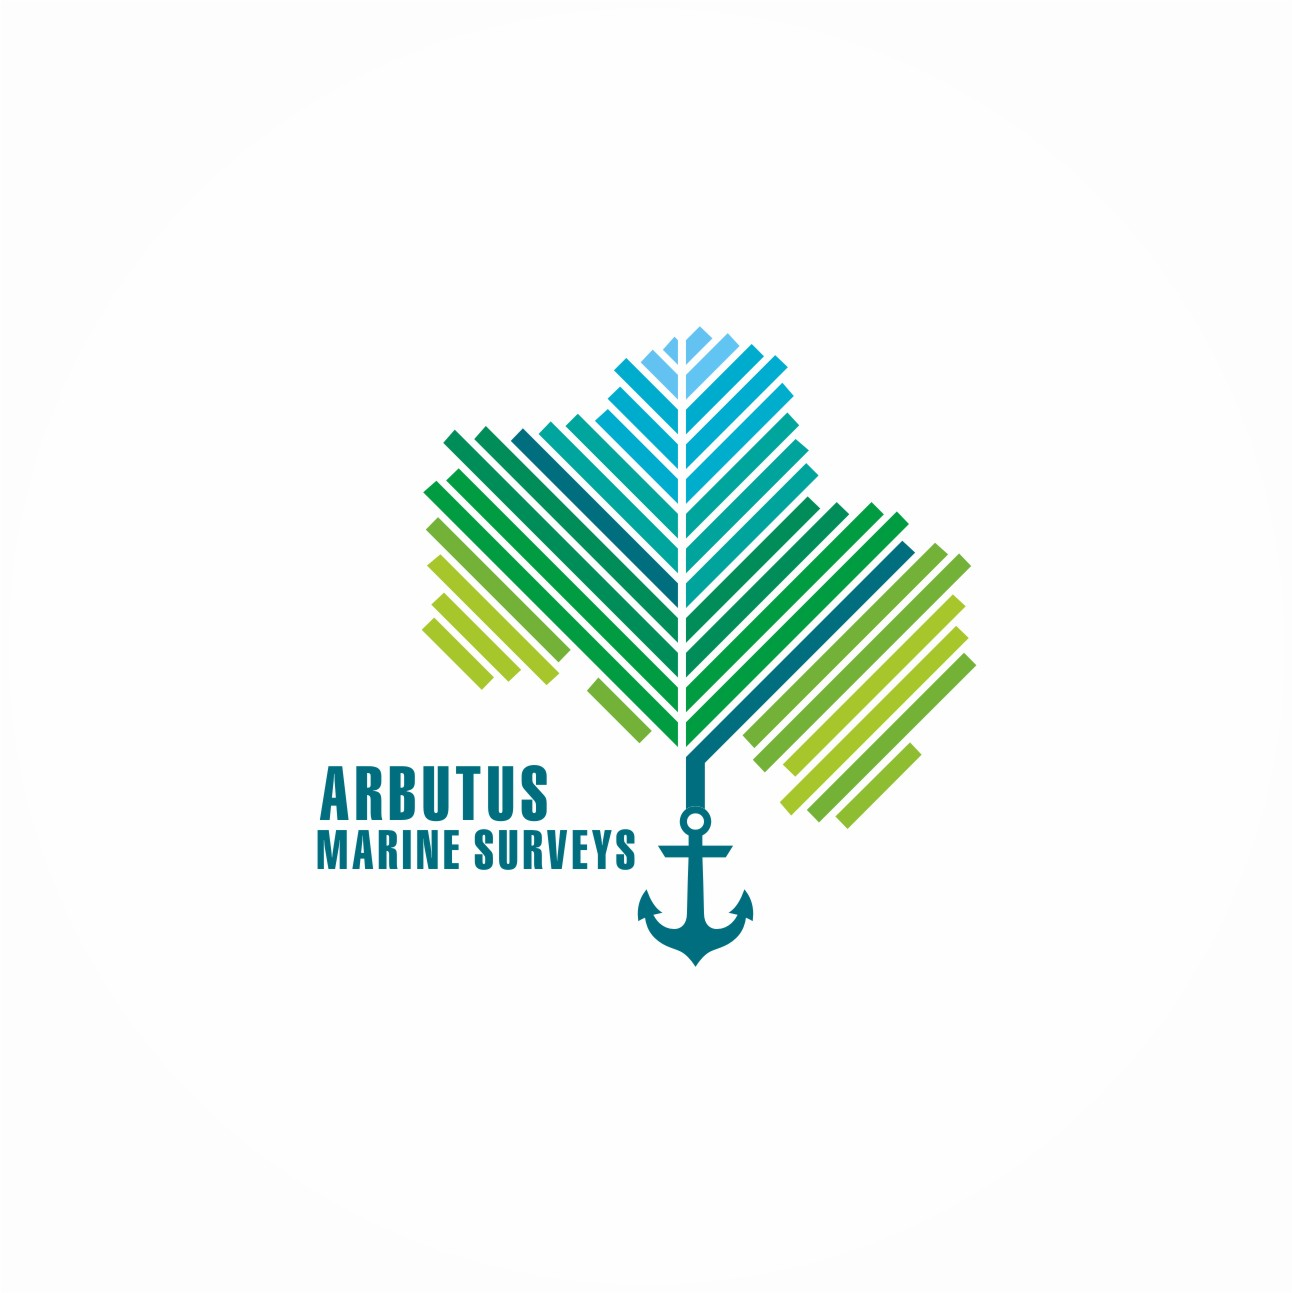 Logo Design by Private User - Entry No. 38 in the Logo Design Contest Professional Business Logo Design for Arbutus Marine Surveys.